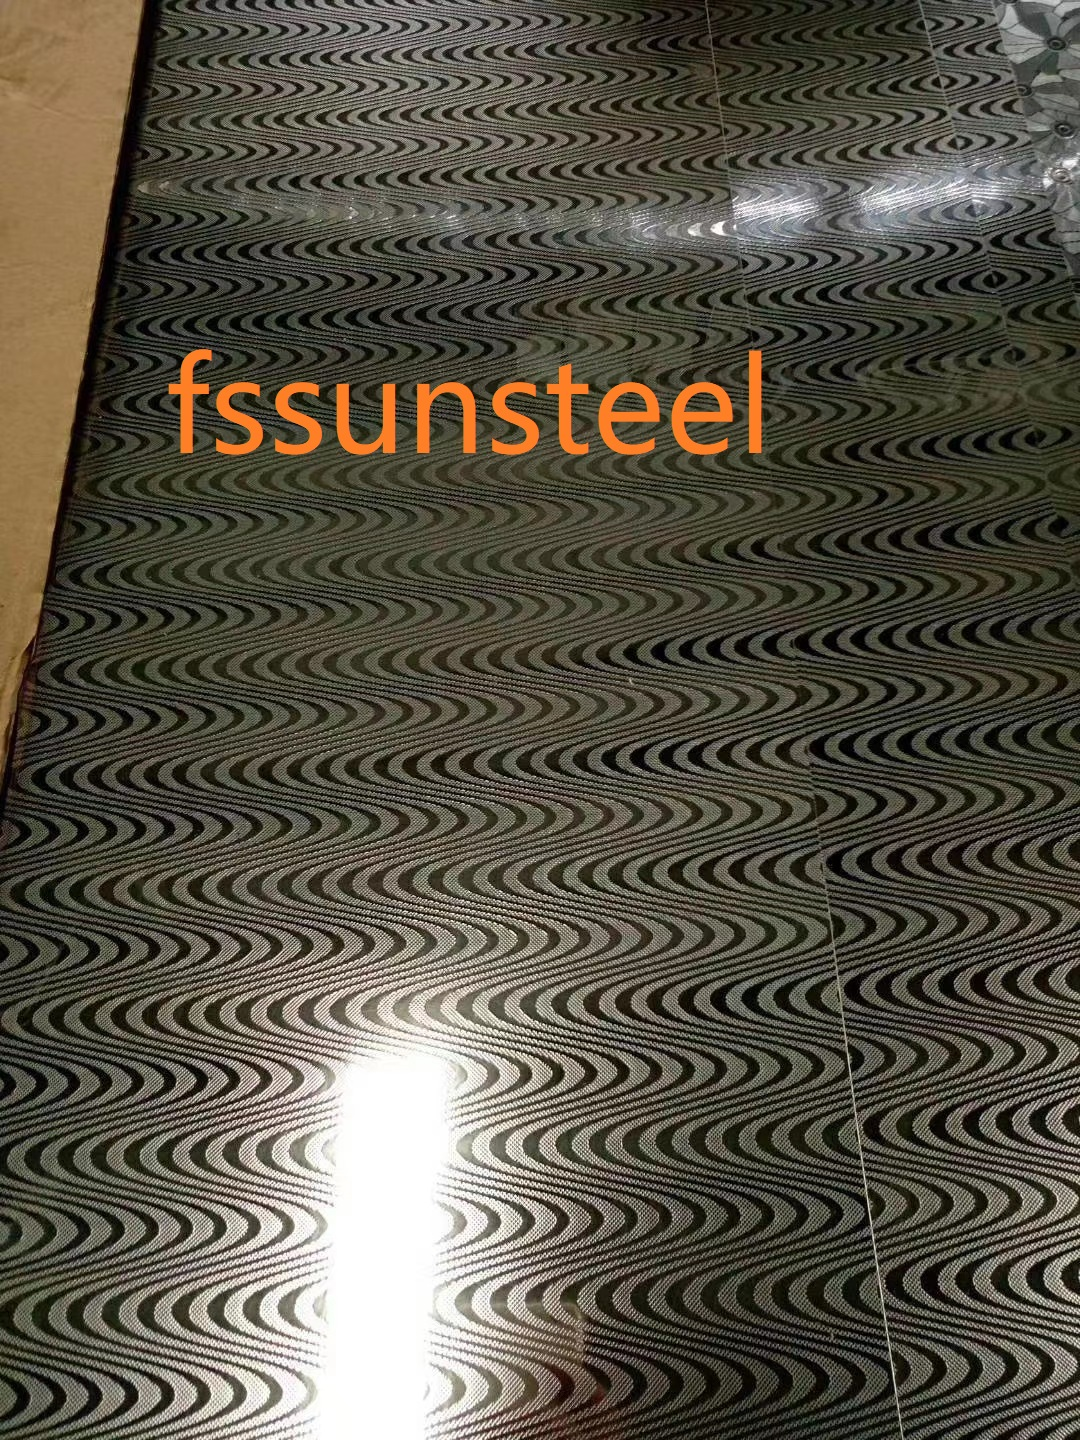 304 Embossed Stainless Steel Decorative Sheets